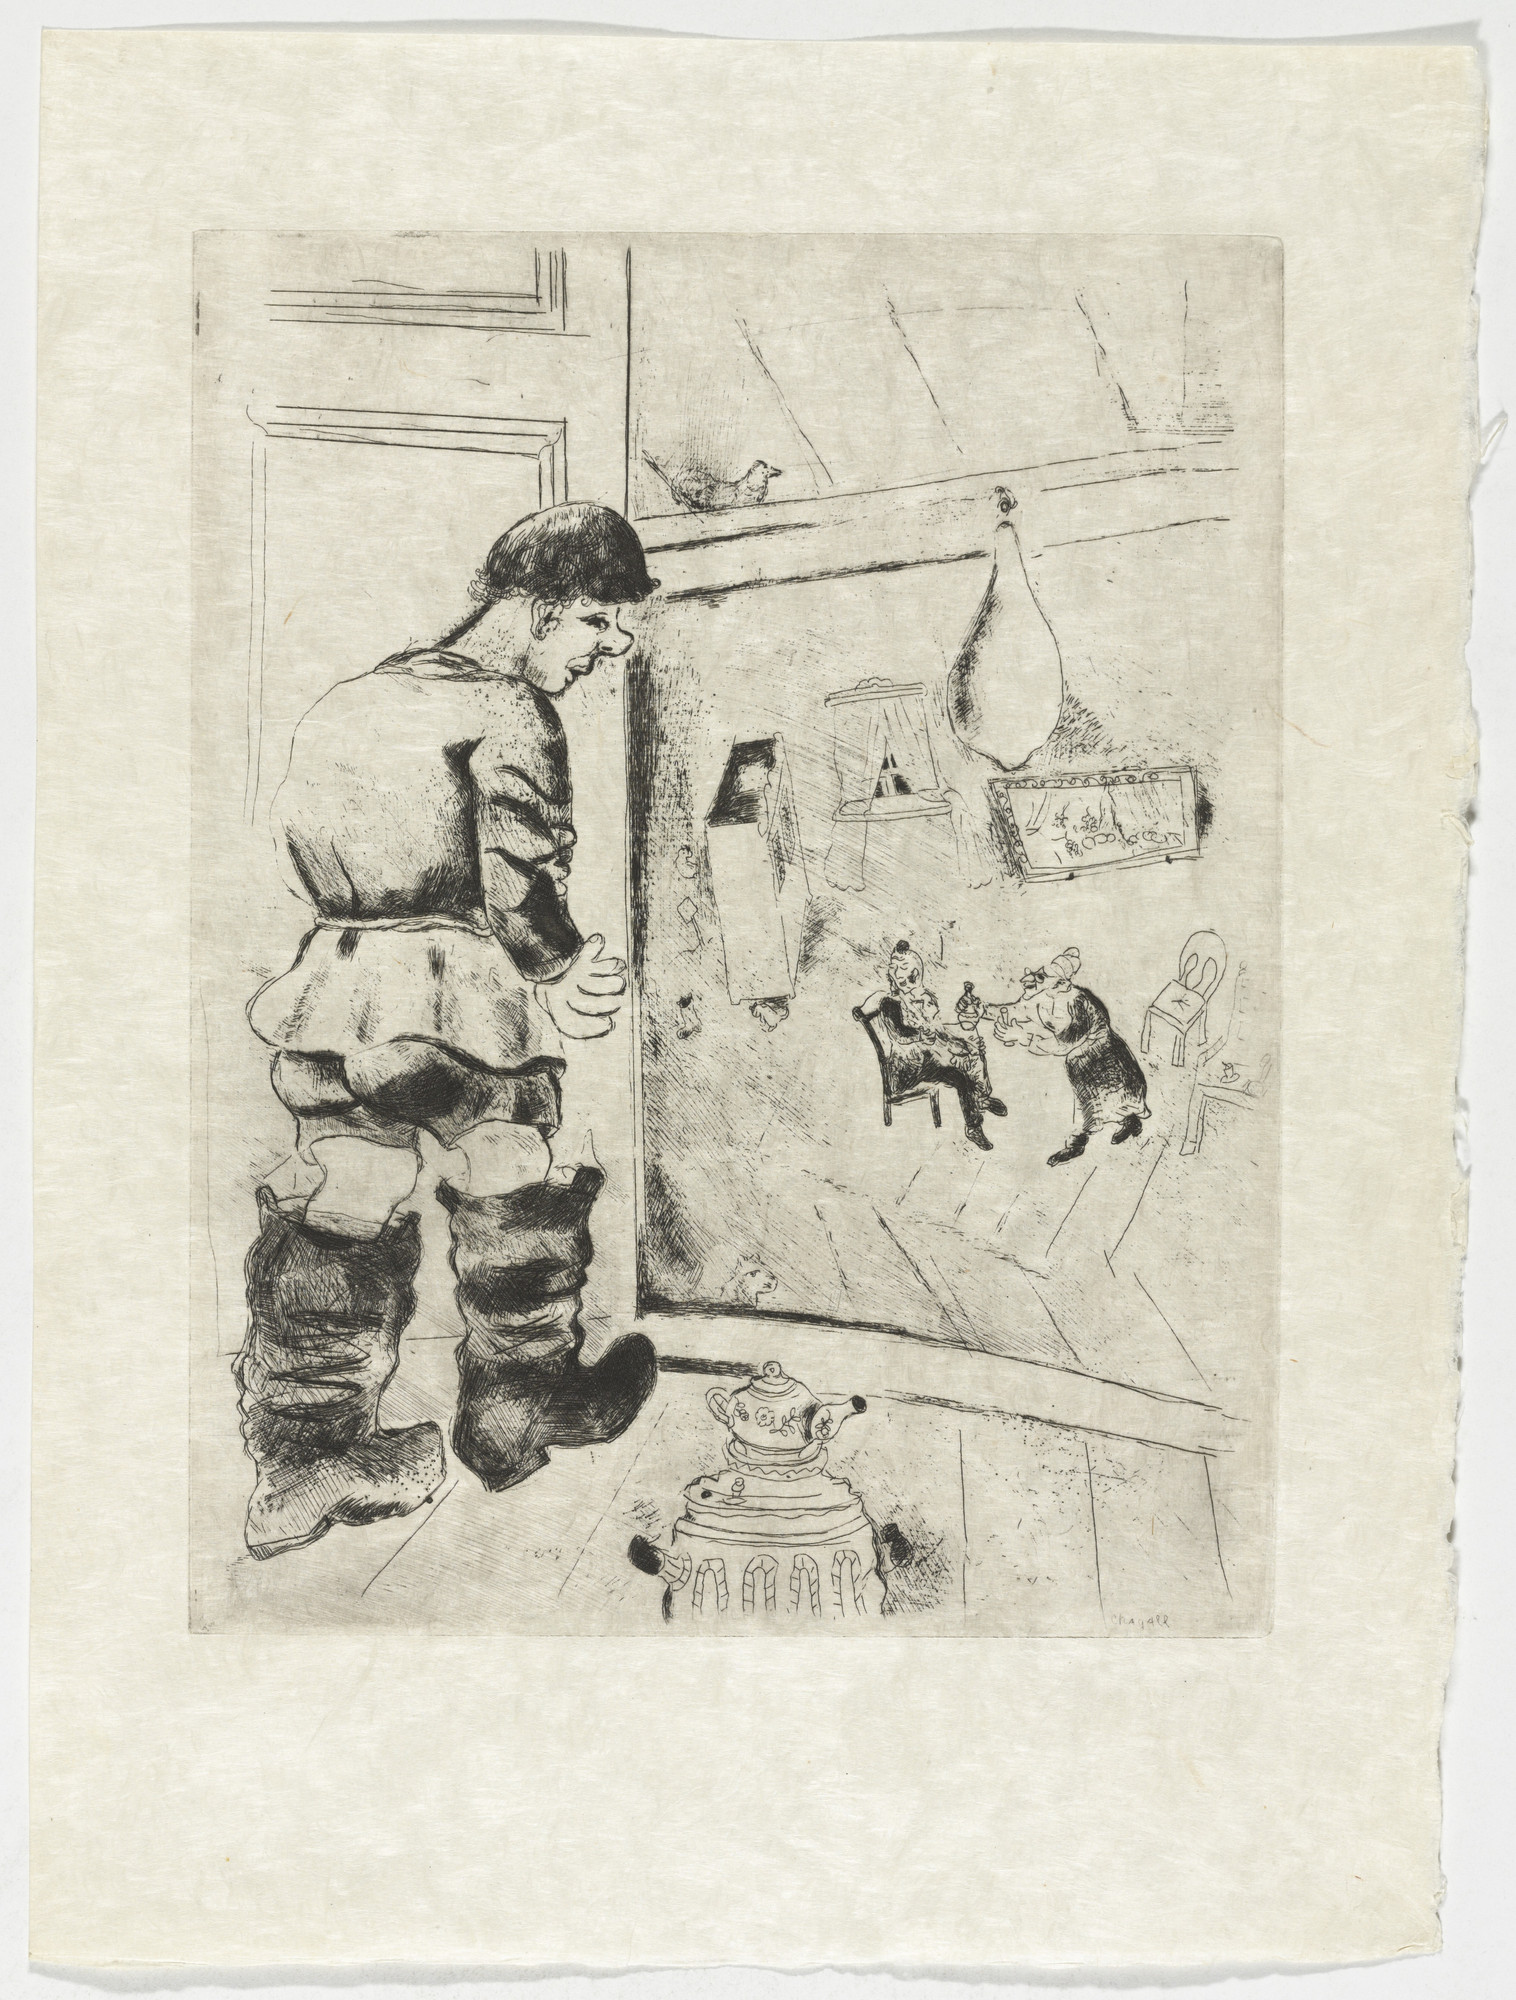 Marc Chagall. Prochka, plate XLIII (supplementary suite) from Les Âmes mortes. 1923-48